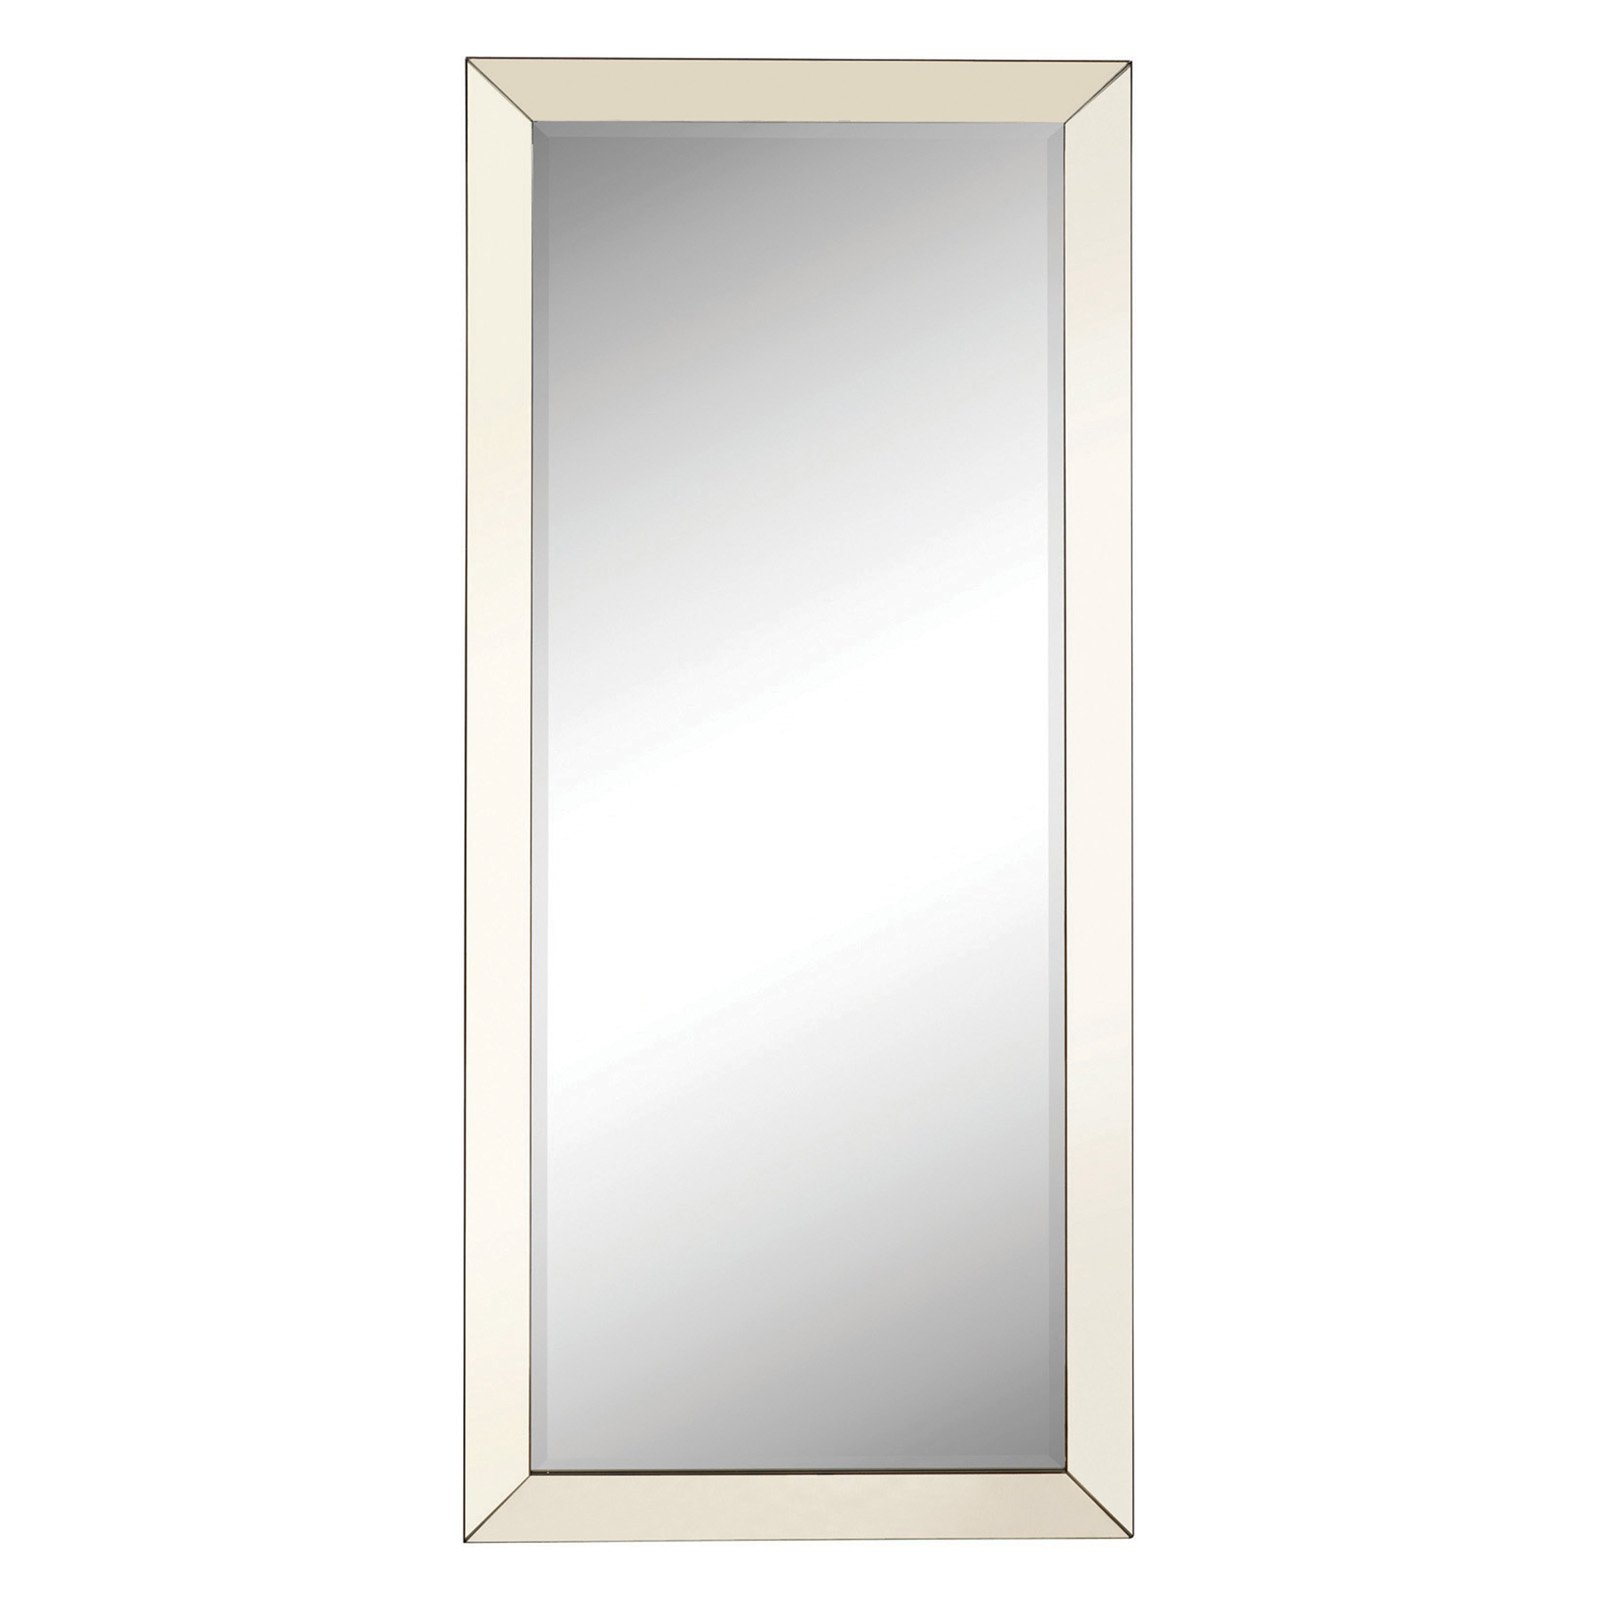 Large Mirrors For Wall Full Length Free Standing Mirror Floor Body Lean Beveled